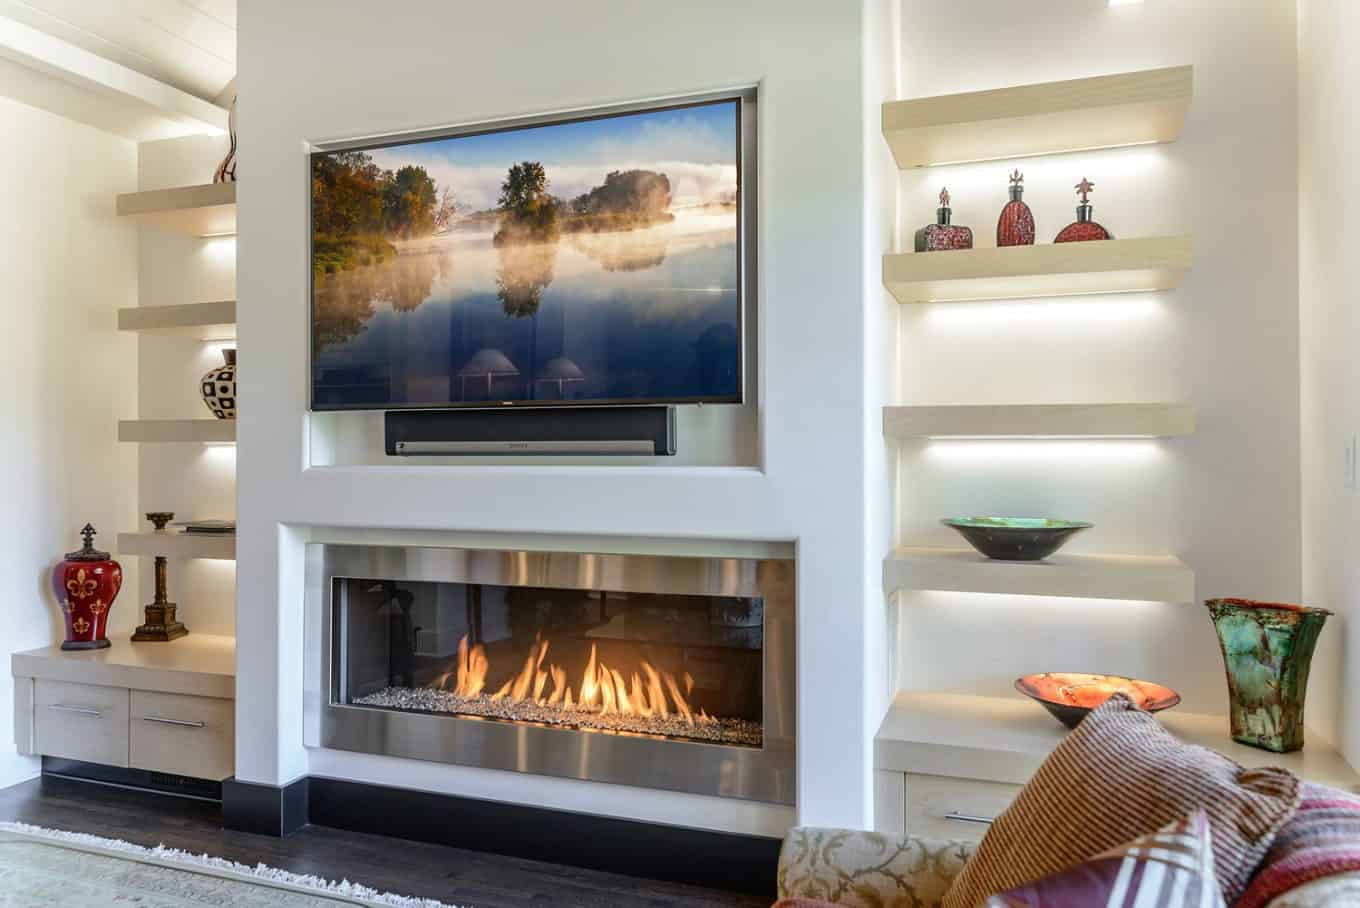 tv above the fireplace